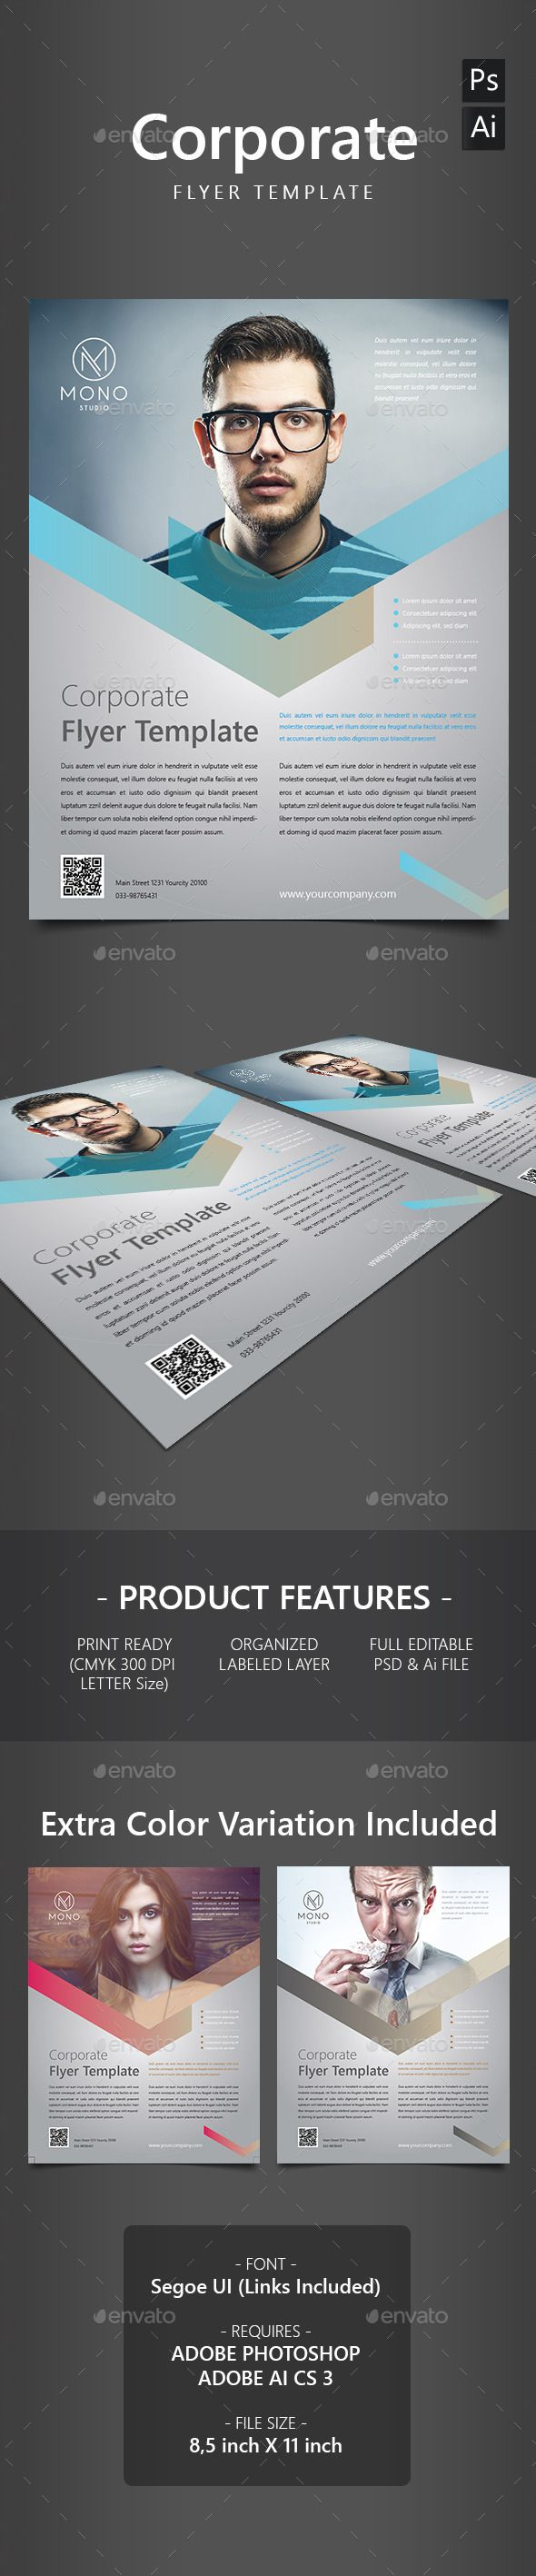 Corporate Flyer Template PSD, AI #design Download: http://graphicriver.net/item/corporate-flyer-template/13823277?ref=ksioks